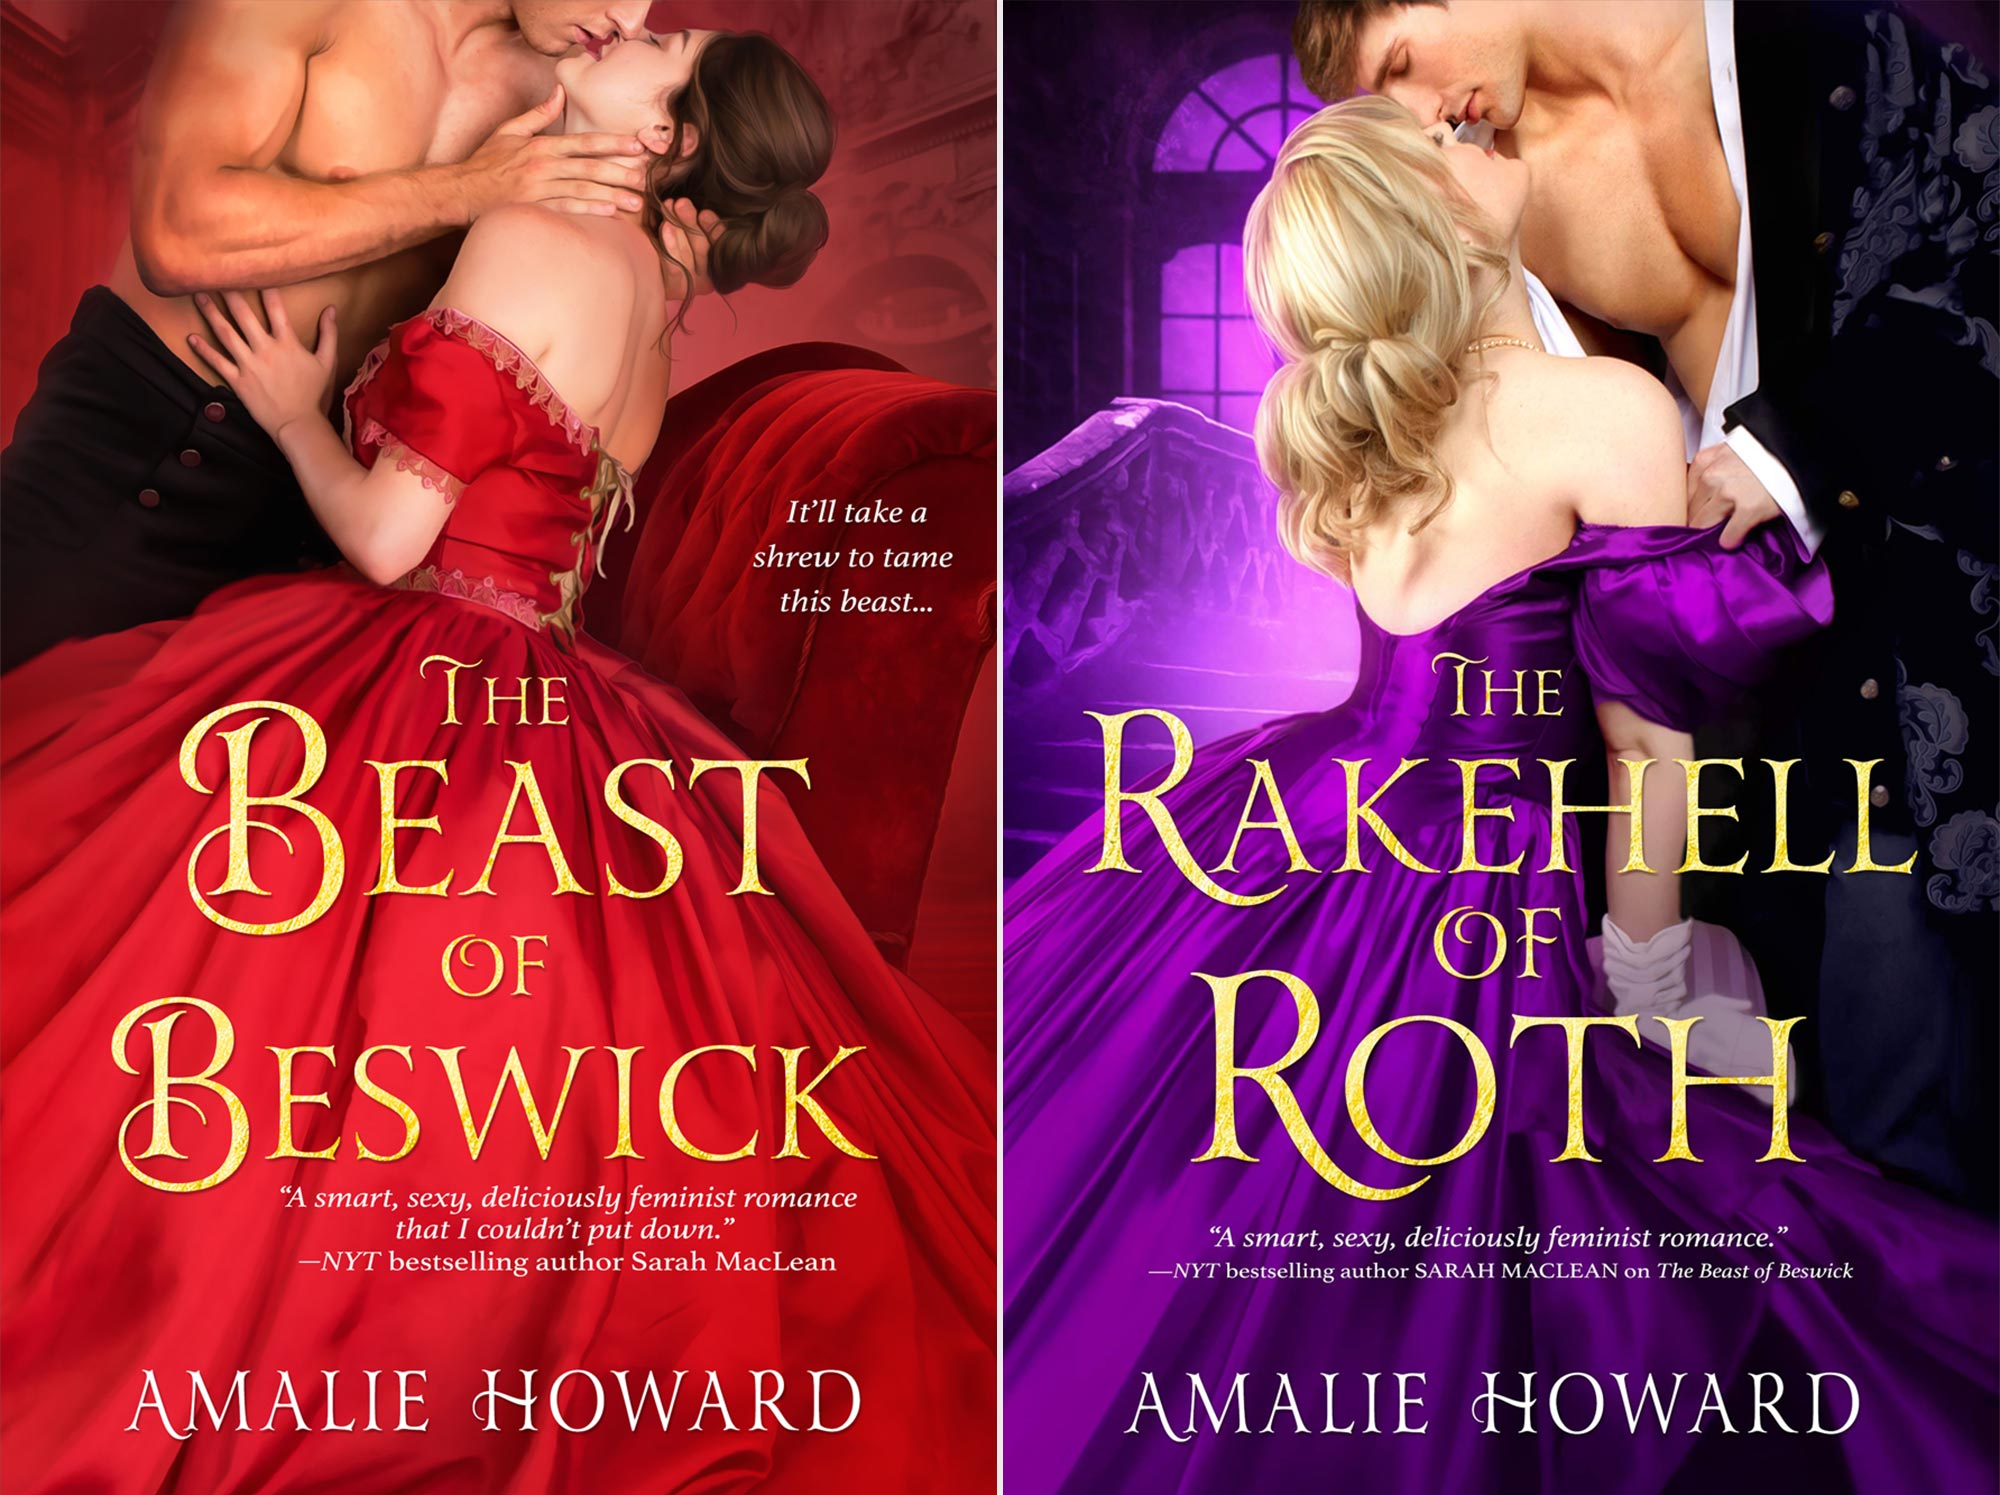 The Beast of Beswick and the Rakehell of Roth